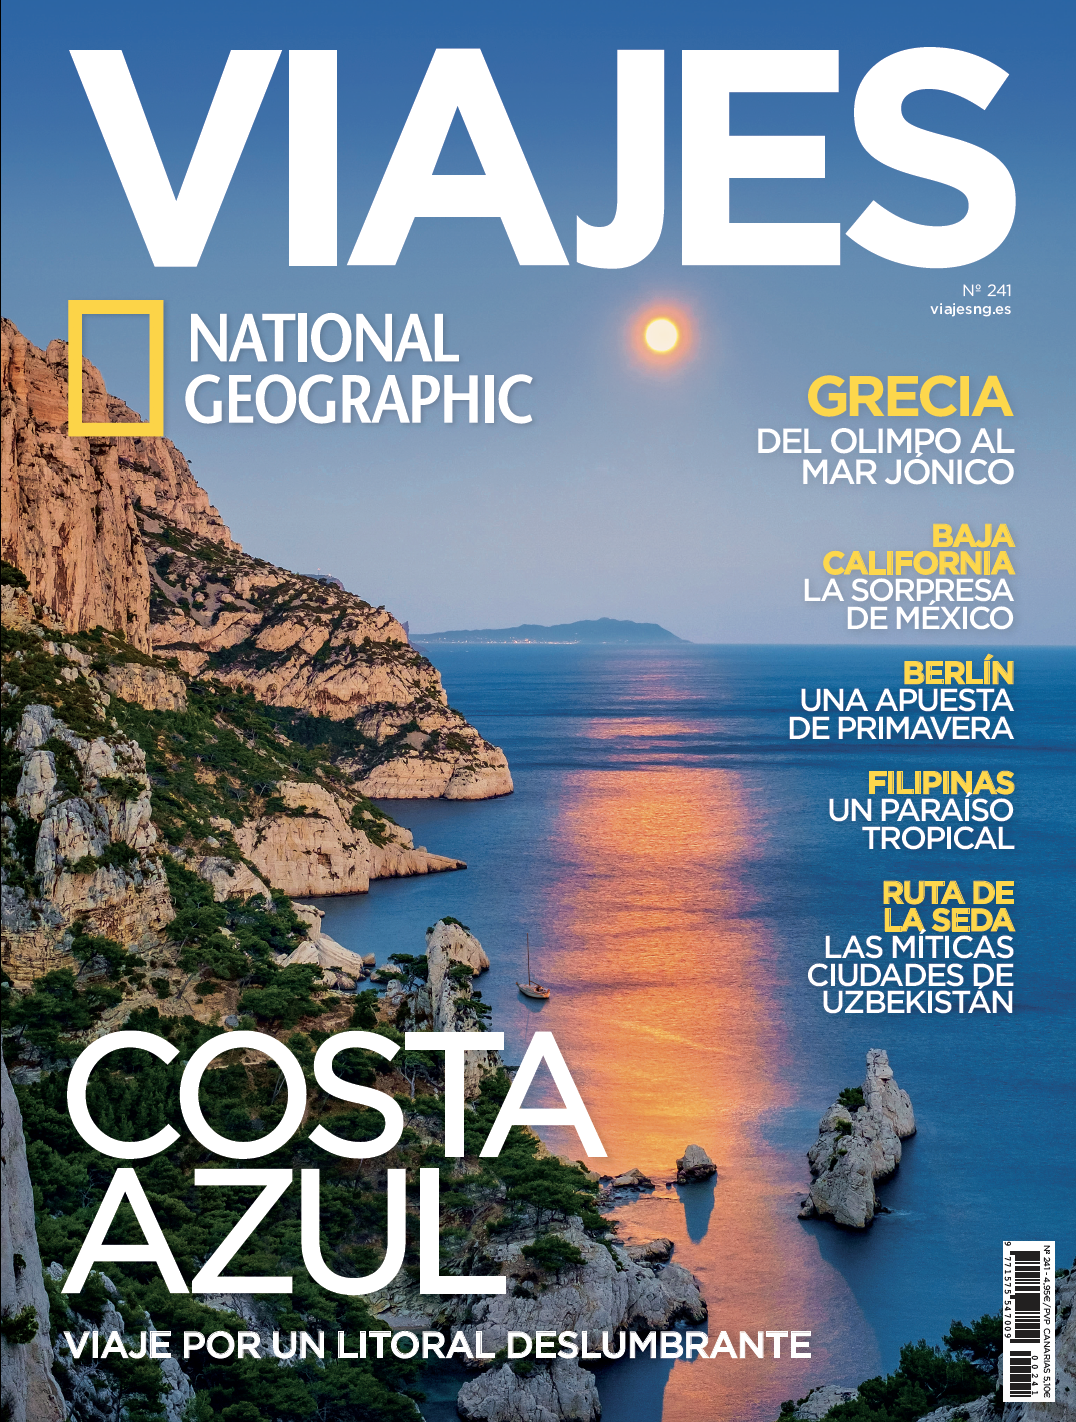 Viajes National Geographic 241